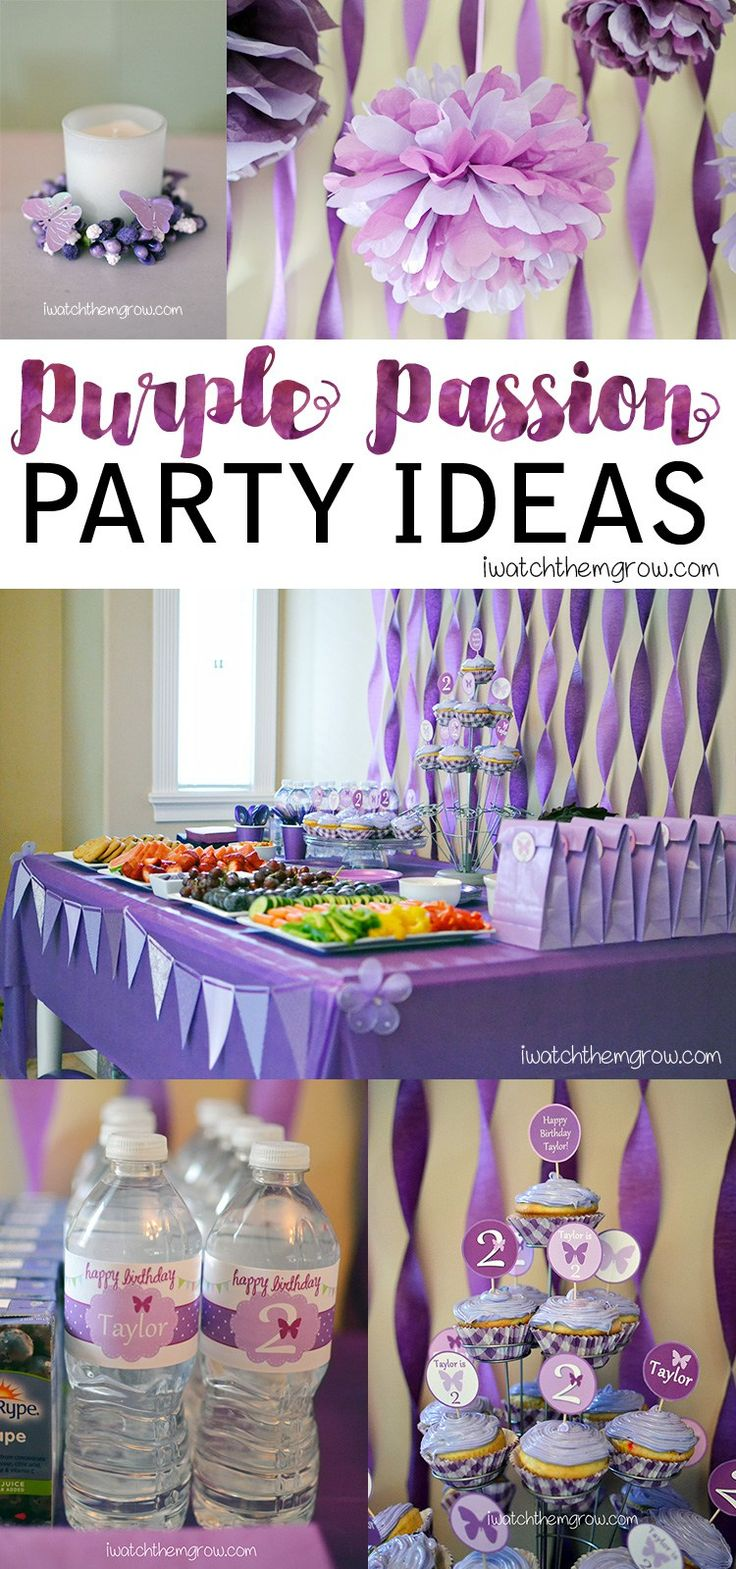 Purple Birthday Party | Pinterest | Purple birthday, Birthdays and ...